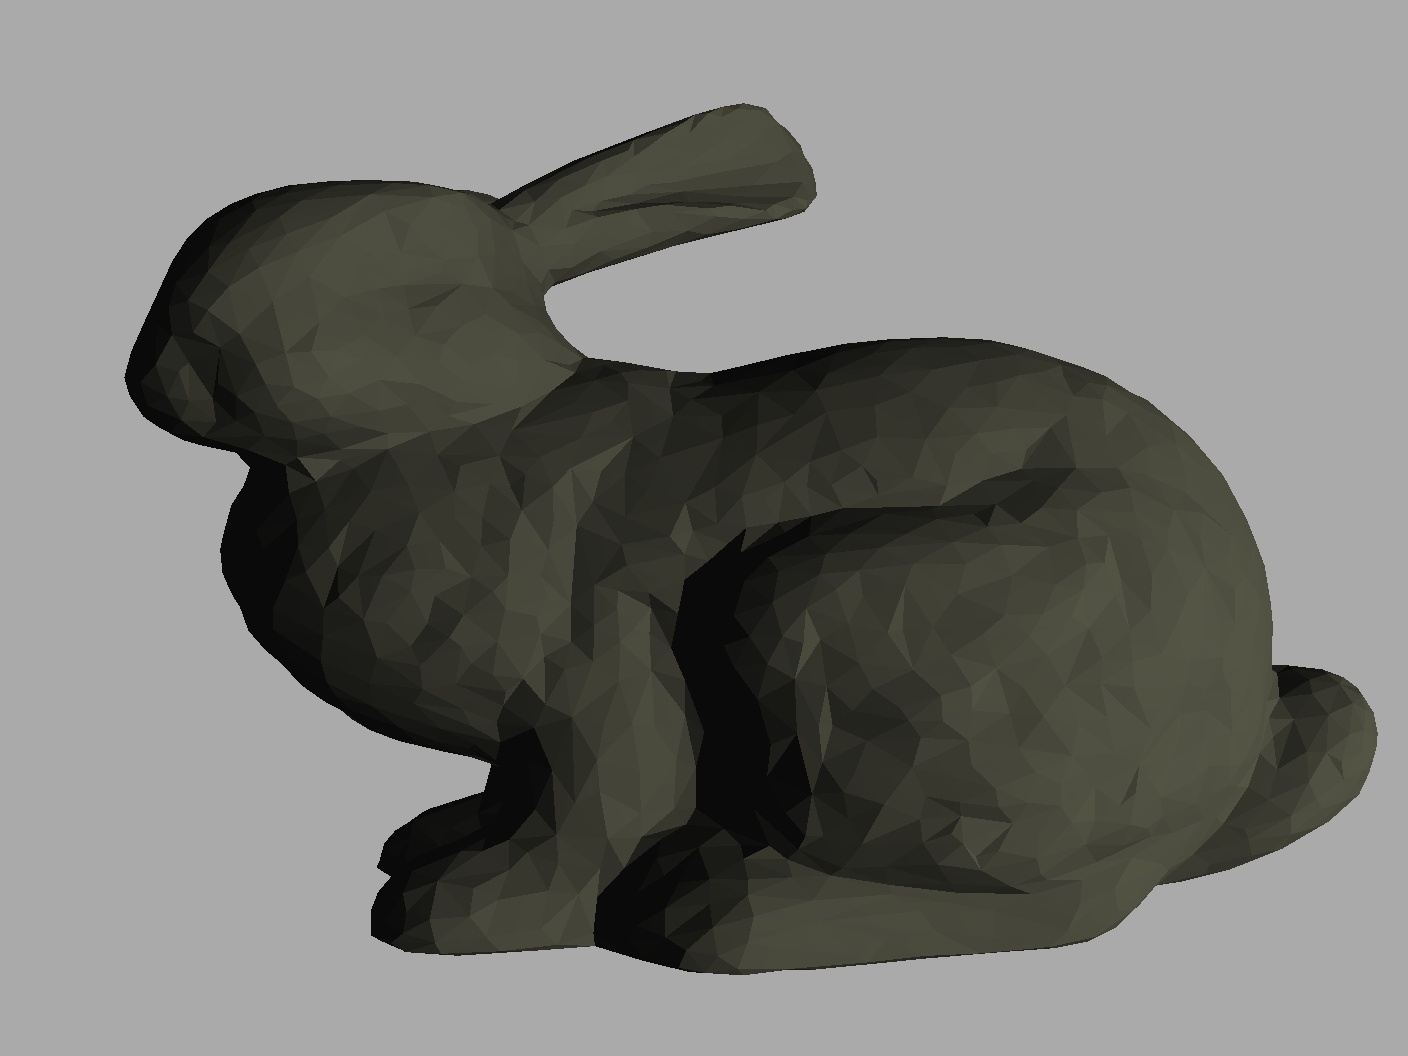 Rendered output of the Stanford Rabbit